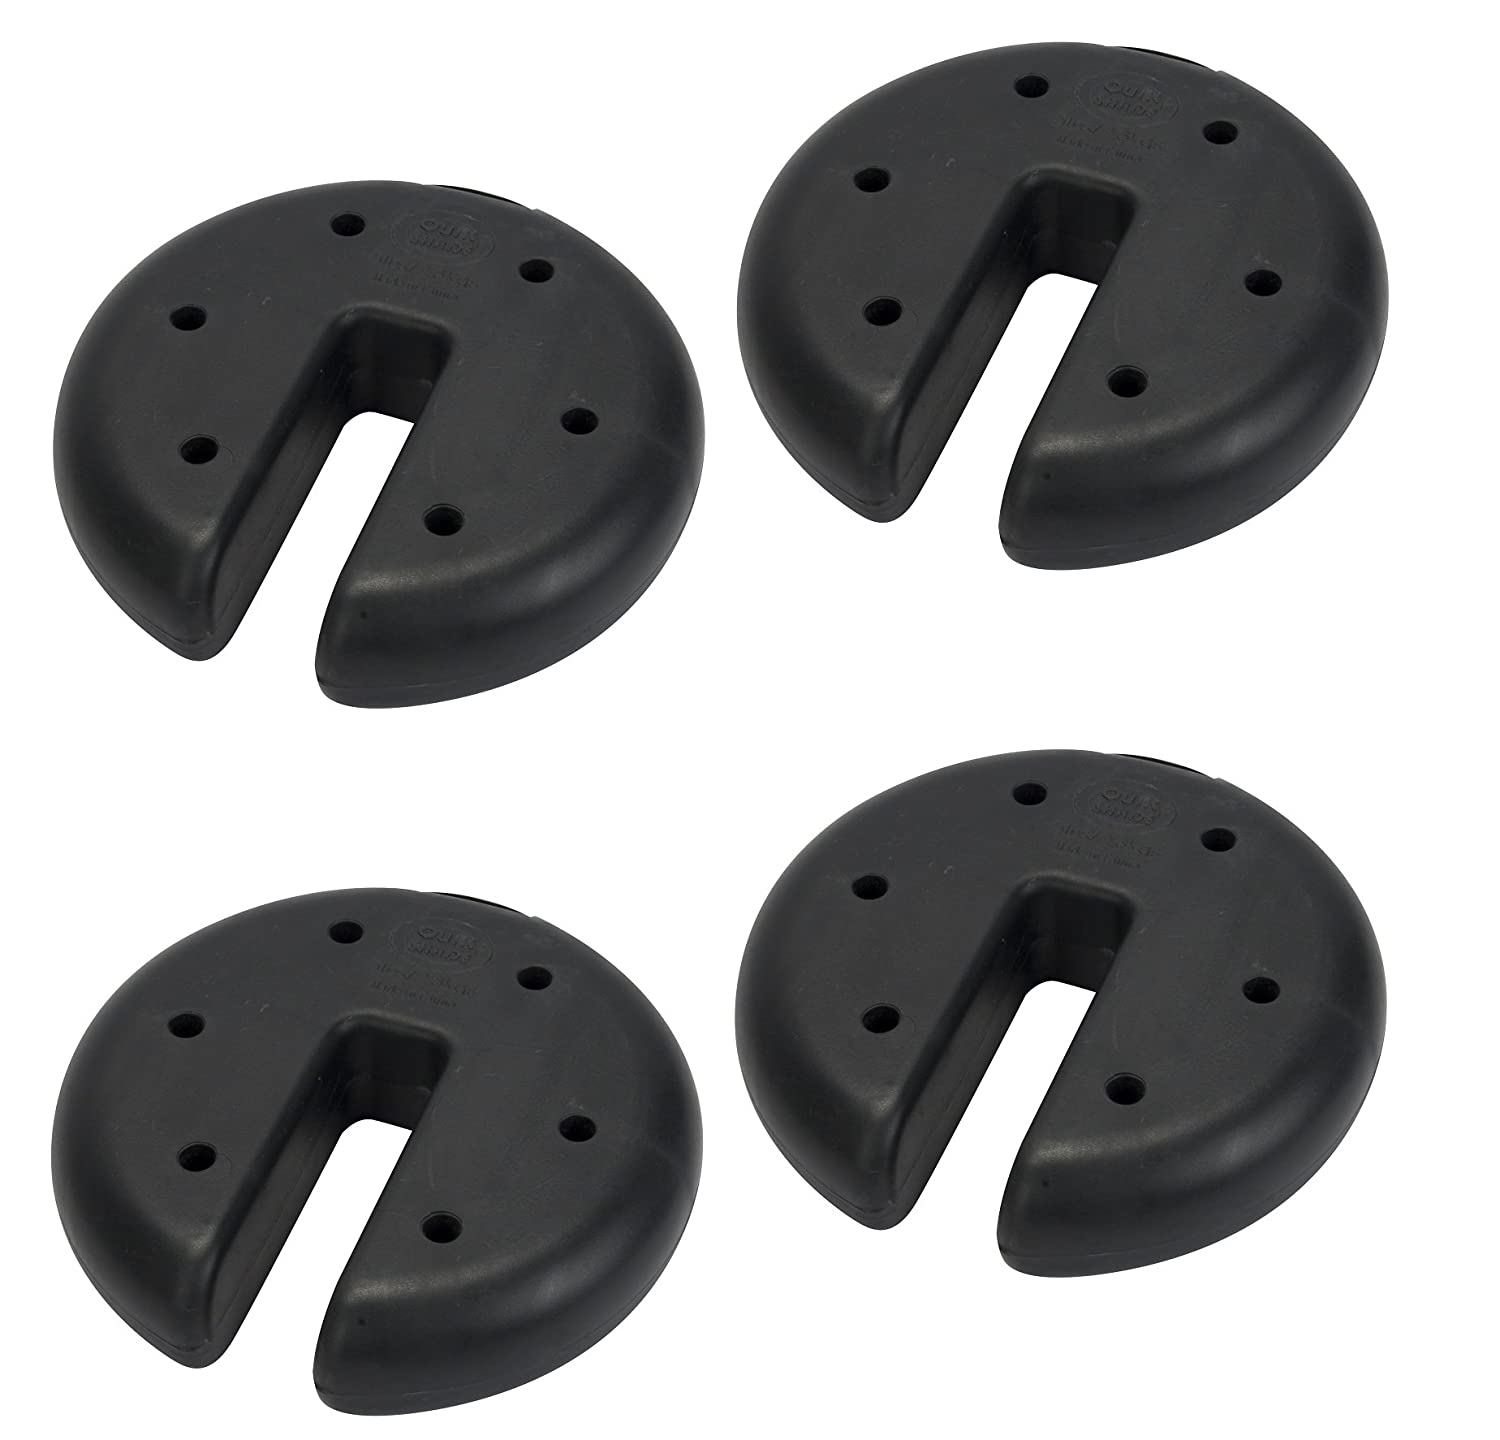 Amazon.com  Quik Shade Canopy Weight Plate Set (2 Set of 4)  Garden u0026 Outdoor  sc 1 st  Amazon.com : weights for canopy - memphite.com